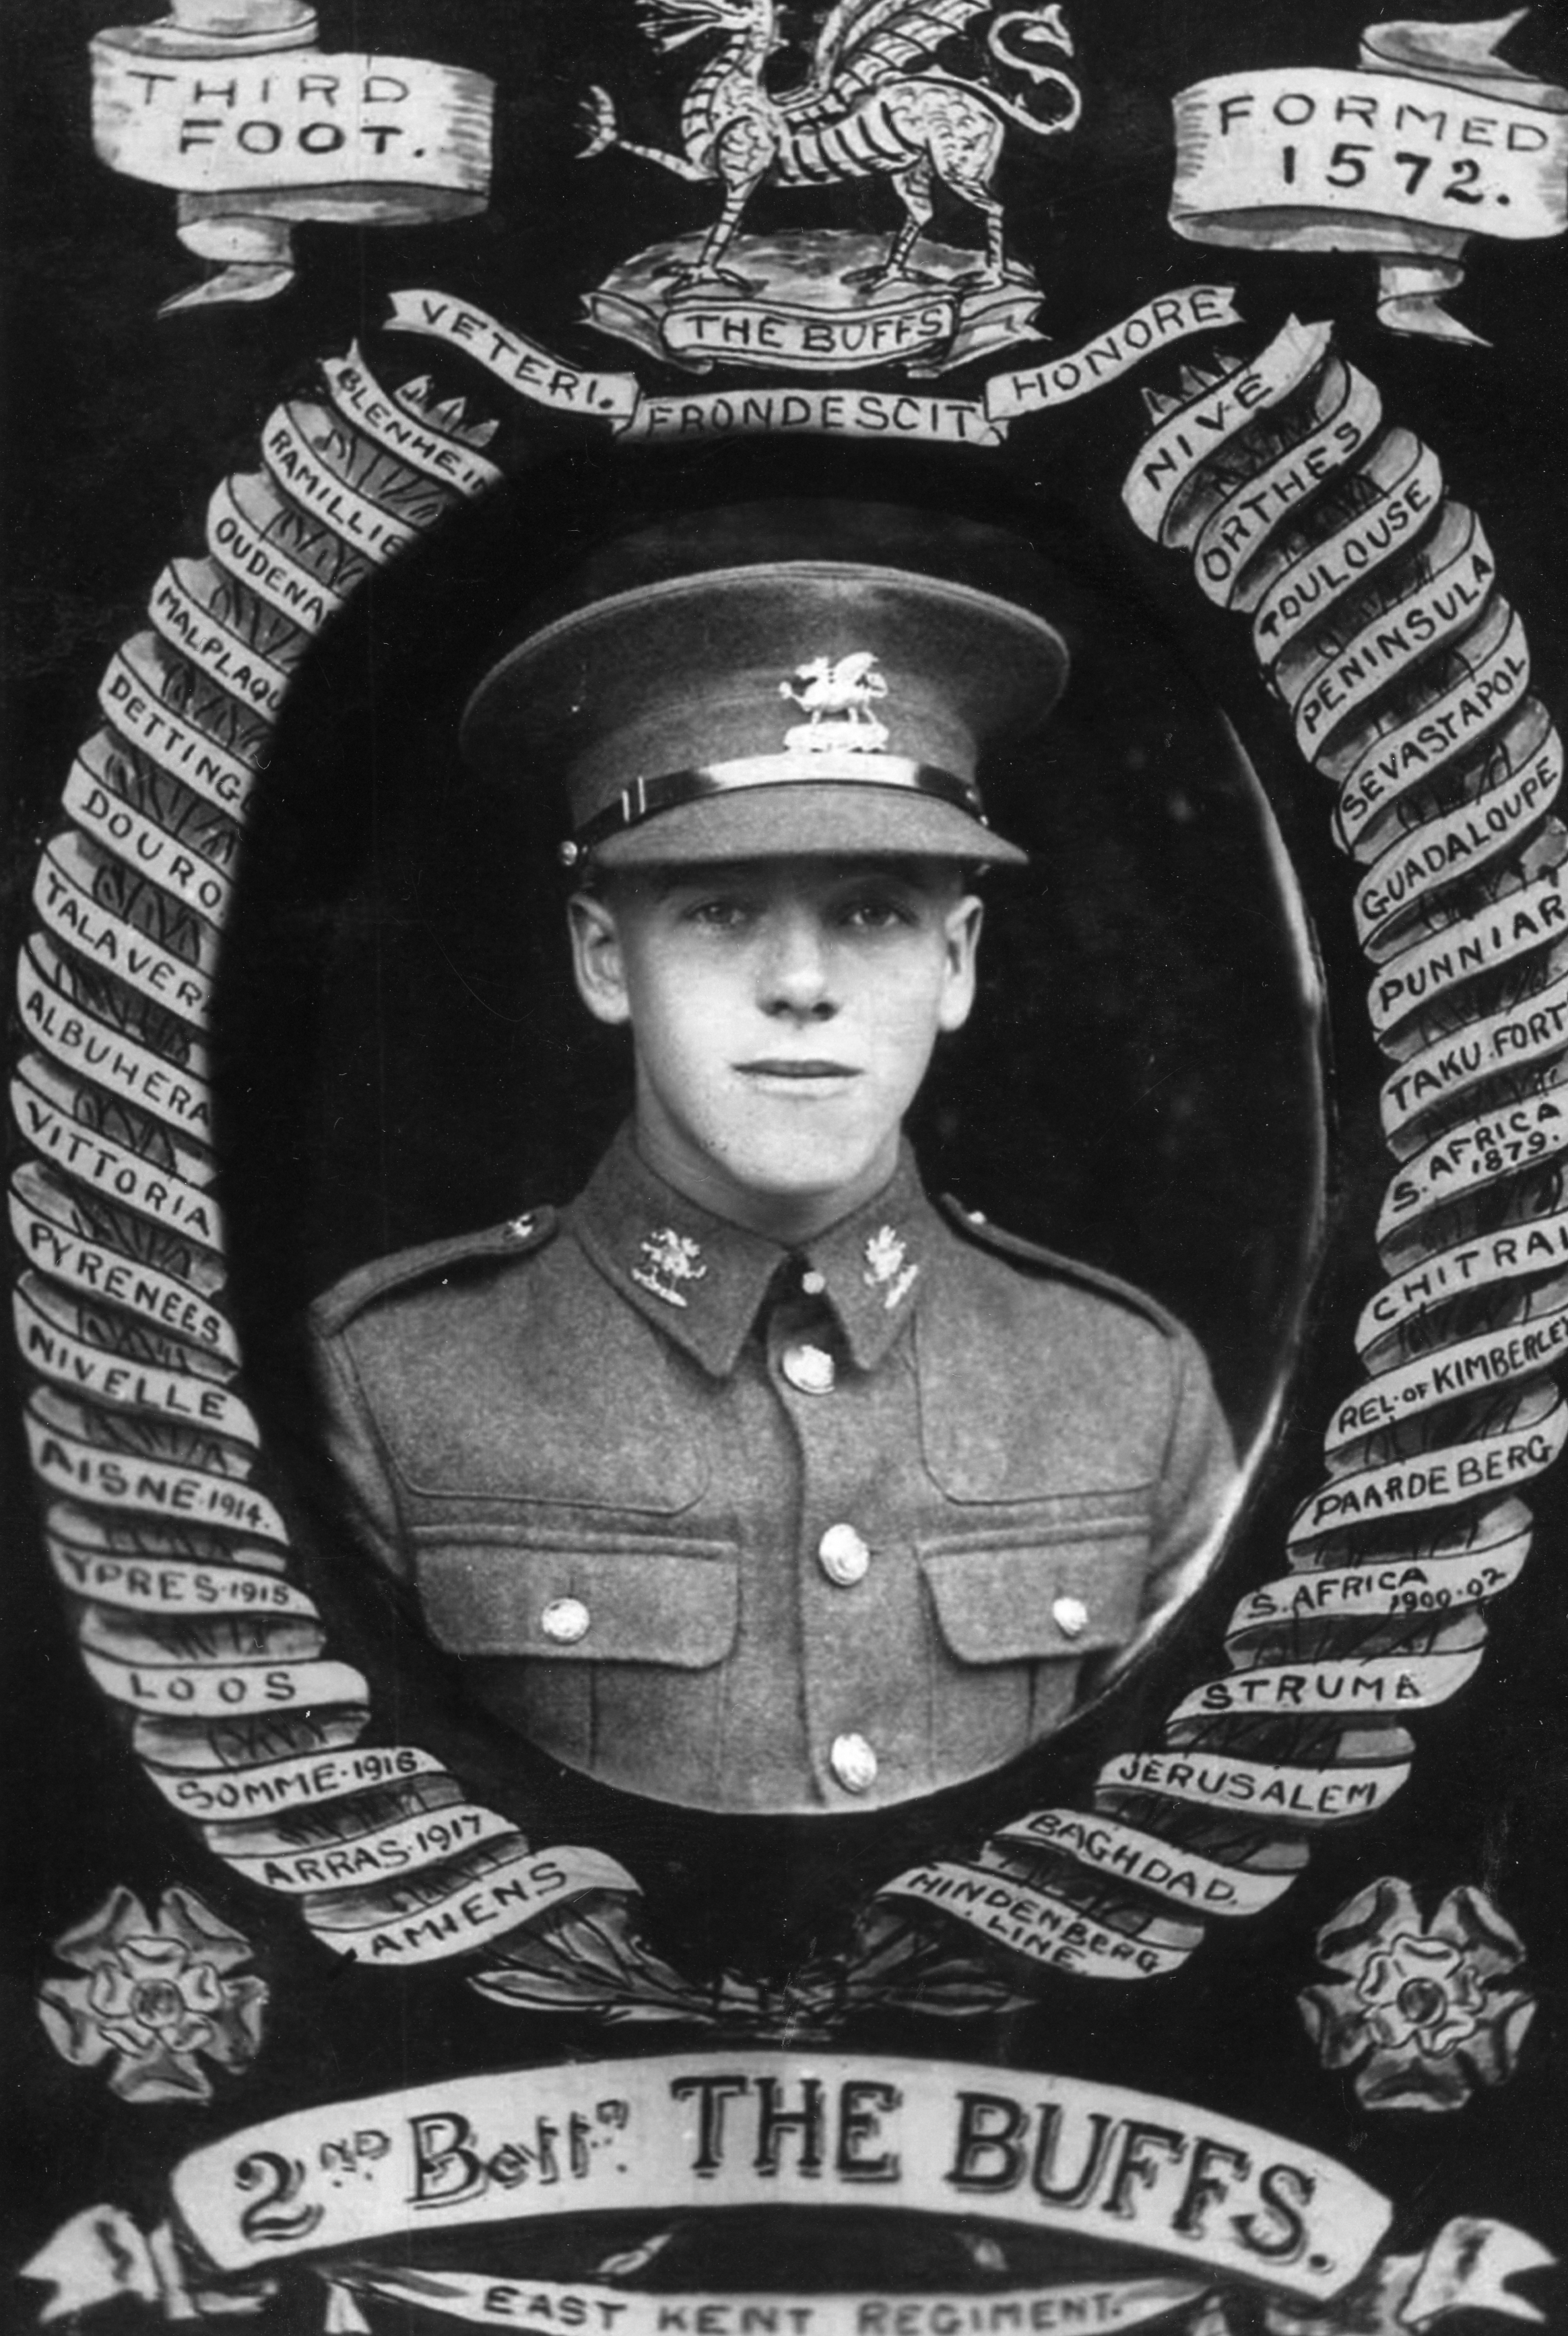 Pte Richard Seaby of the Leicstershire regiment was killed on the night of December 3/4th 1917